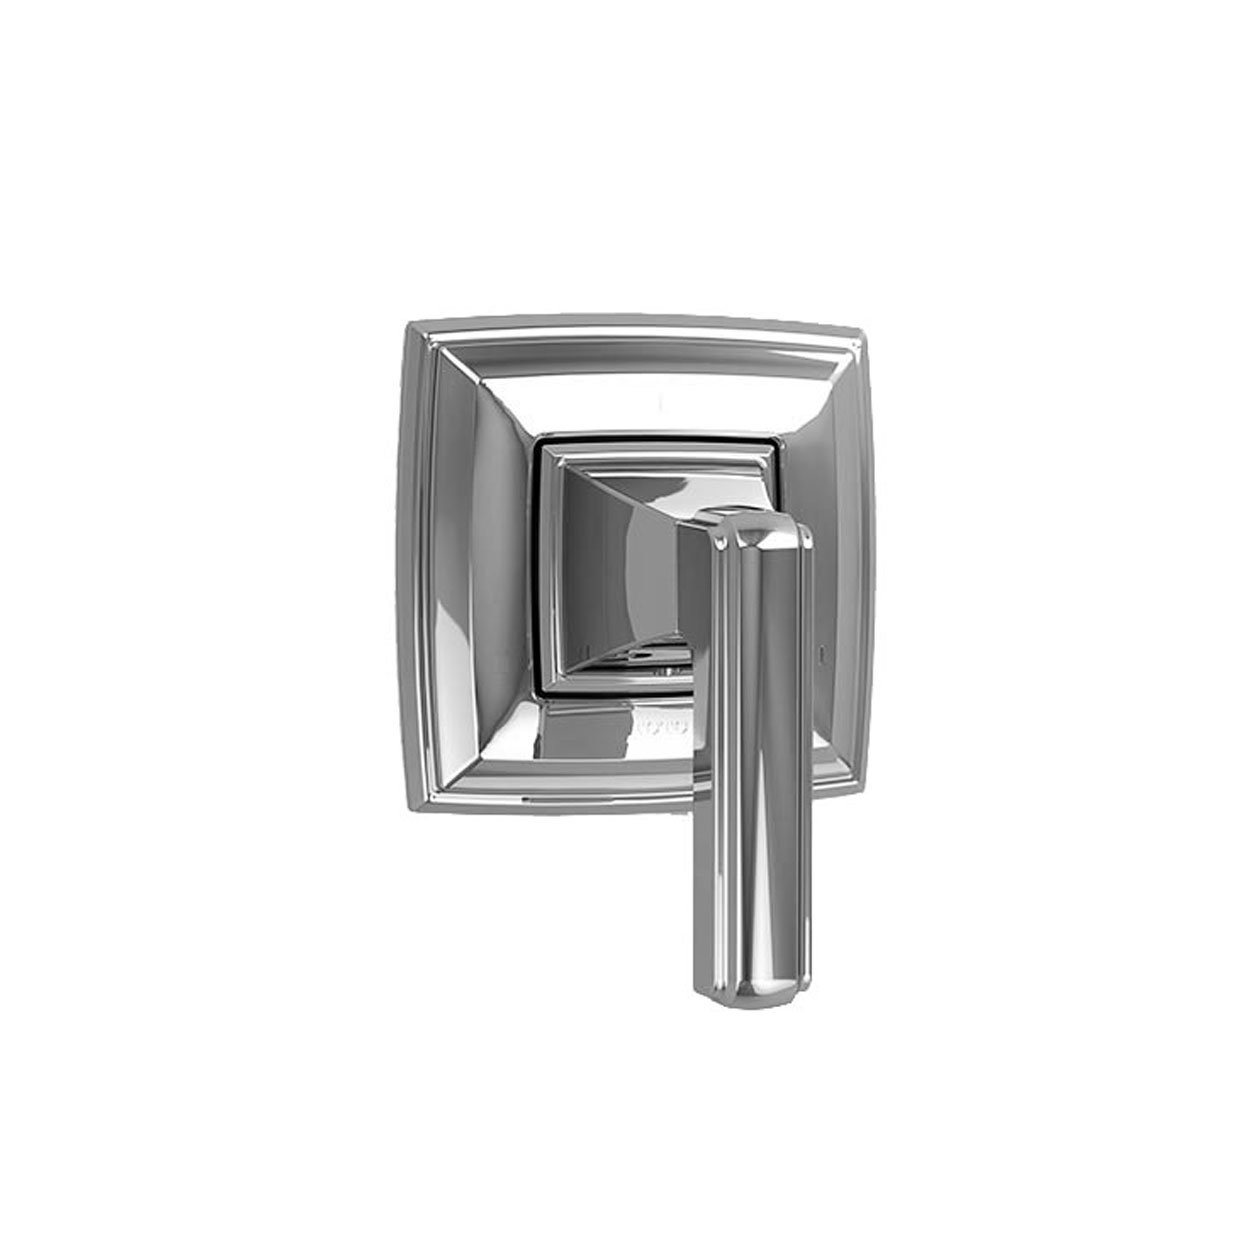 Brushed Nickel Brushed Nickel Toto TS221XW#BN Connelly Three-Way Shower Diverter Trim